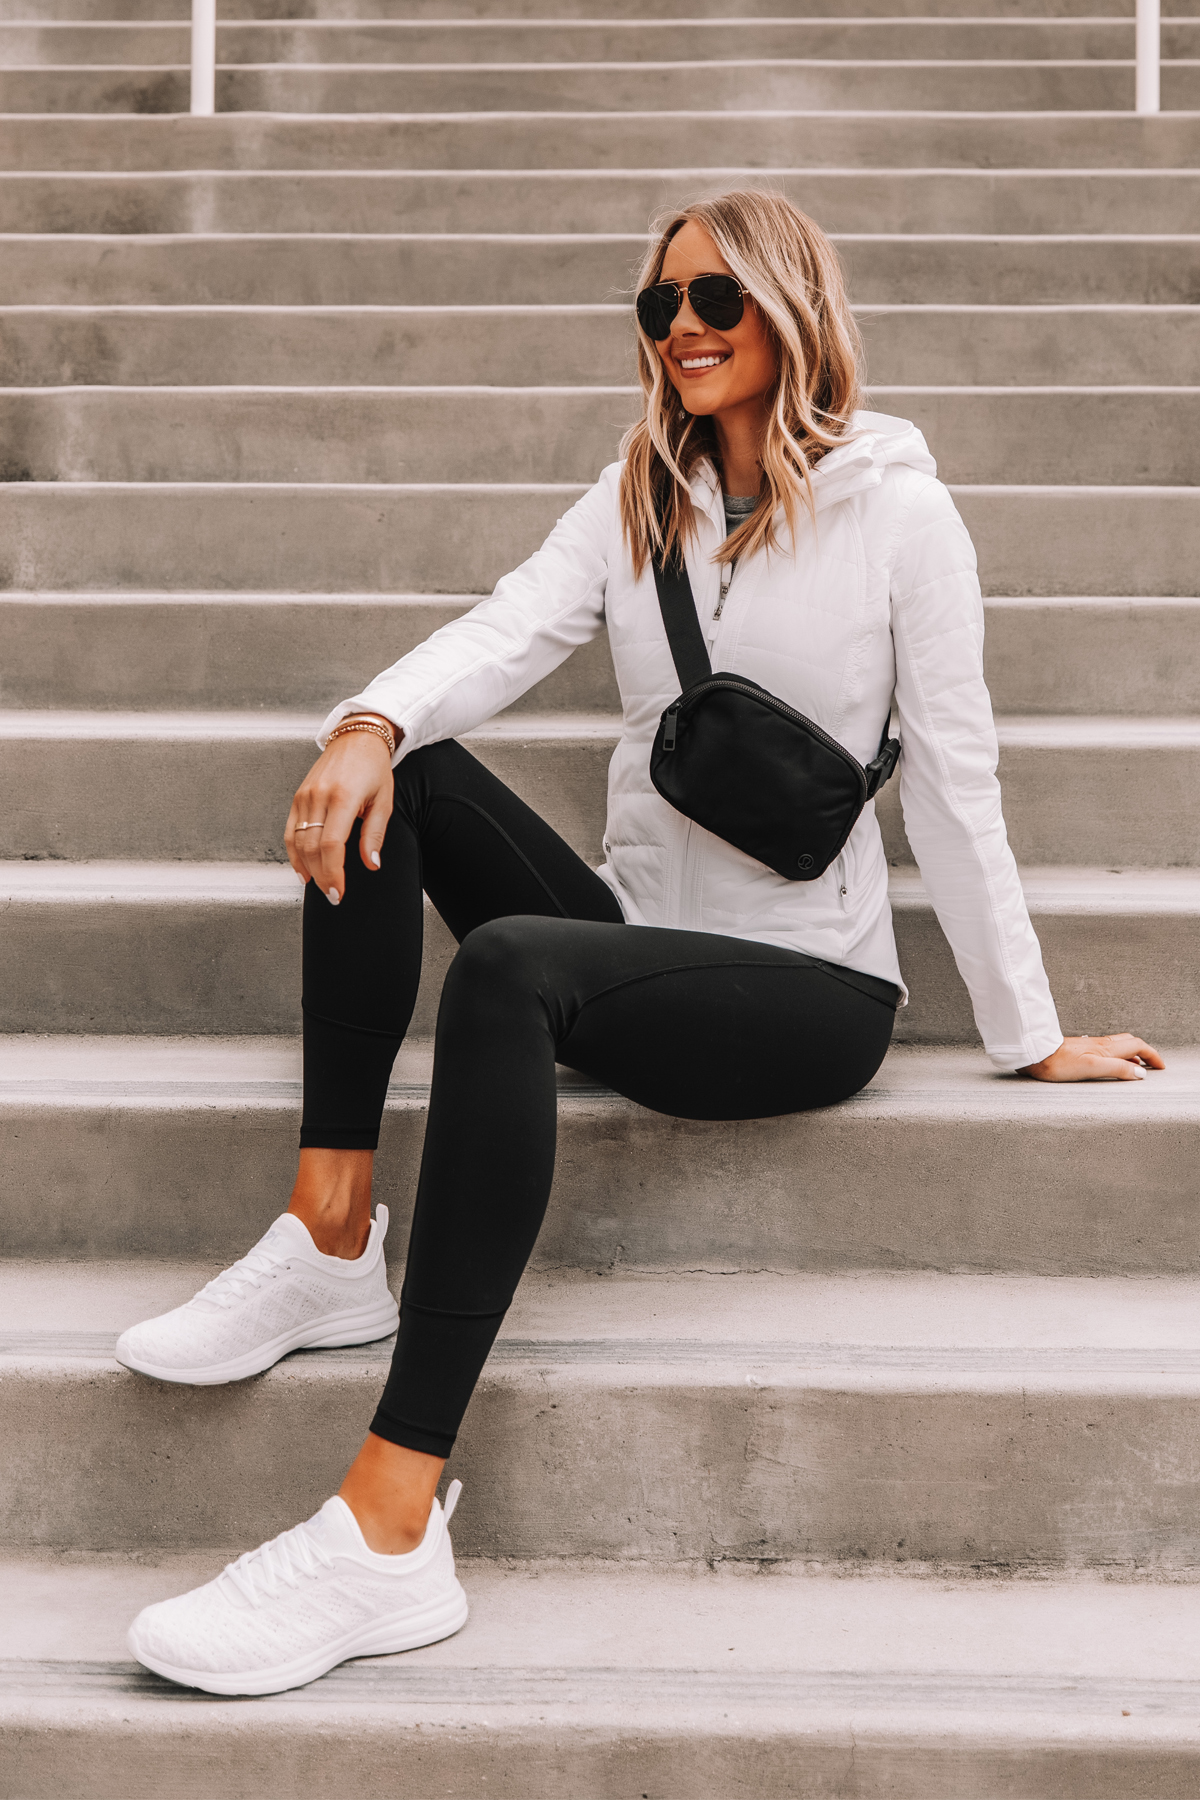 Fashion Jackson Wearing lululemon White Jacket Black Leggings Workout Outfit